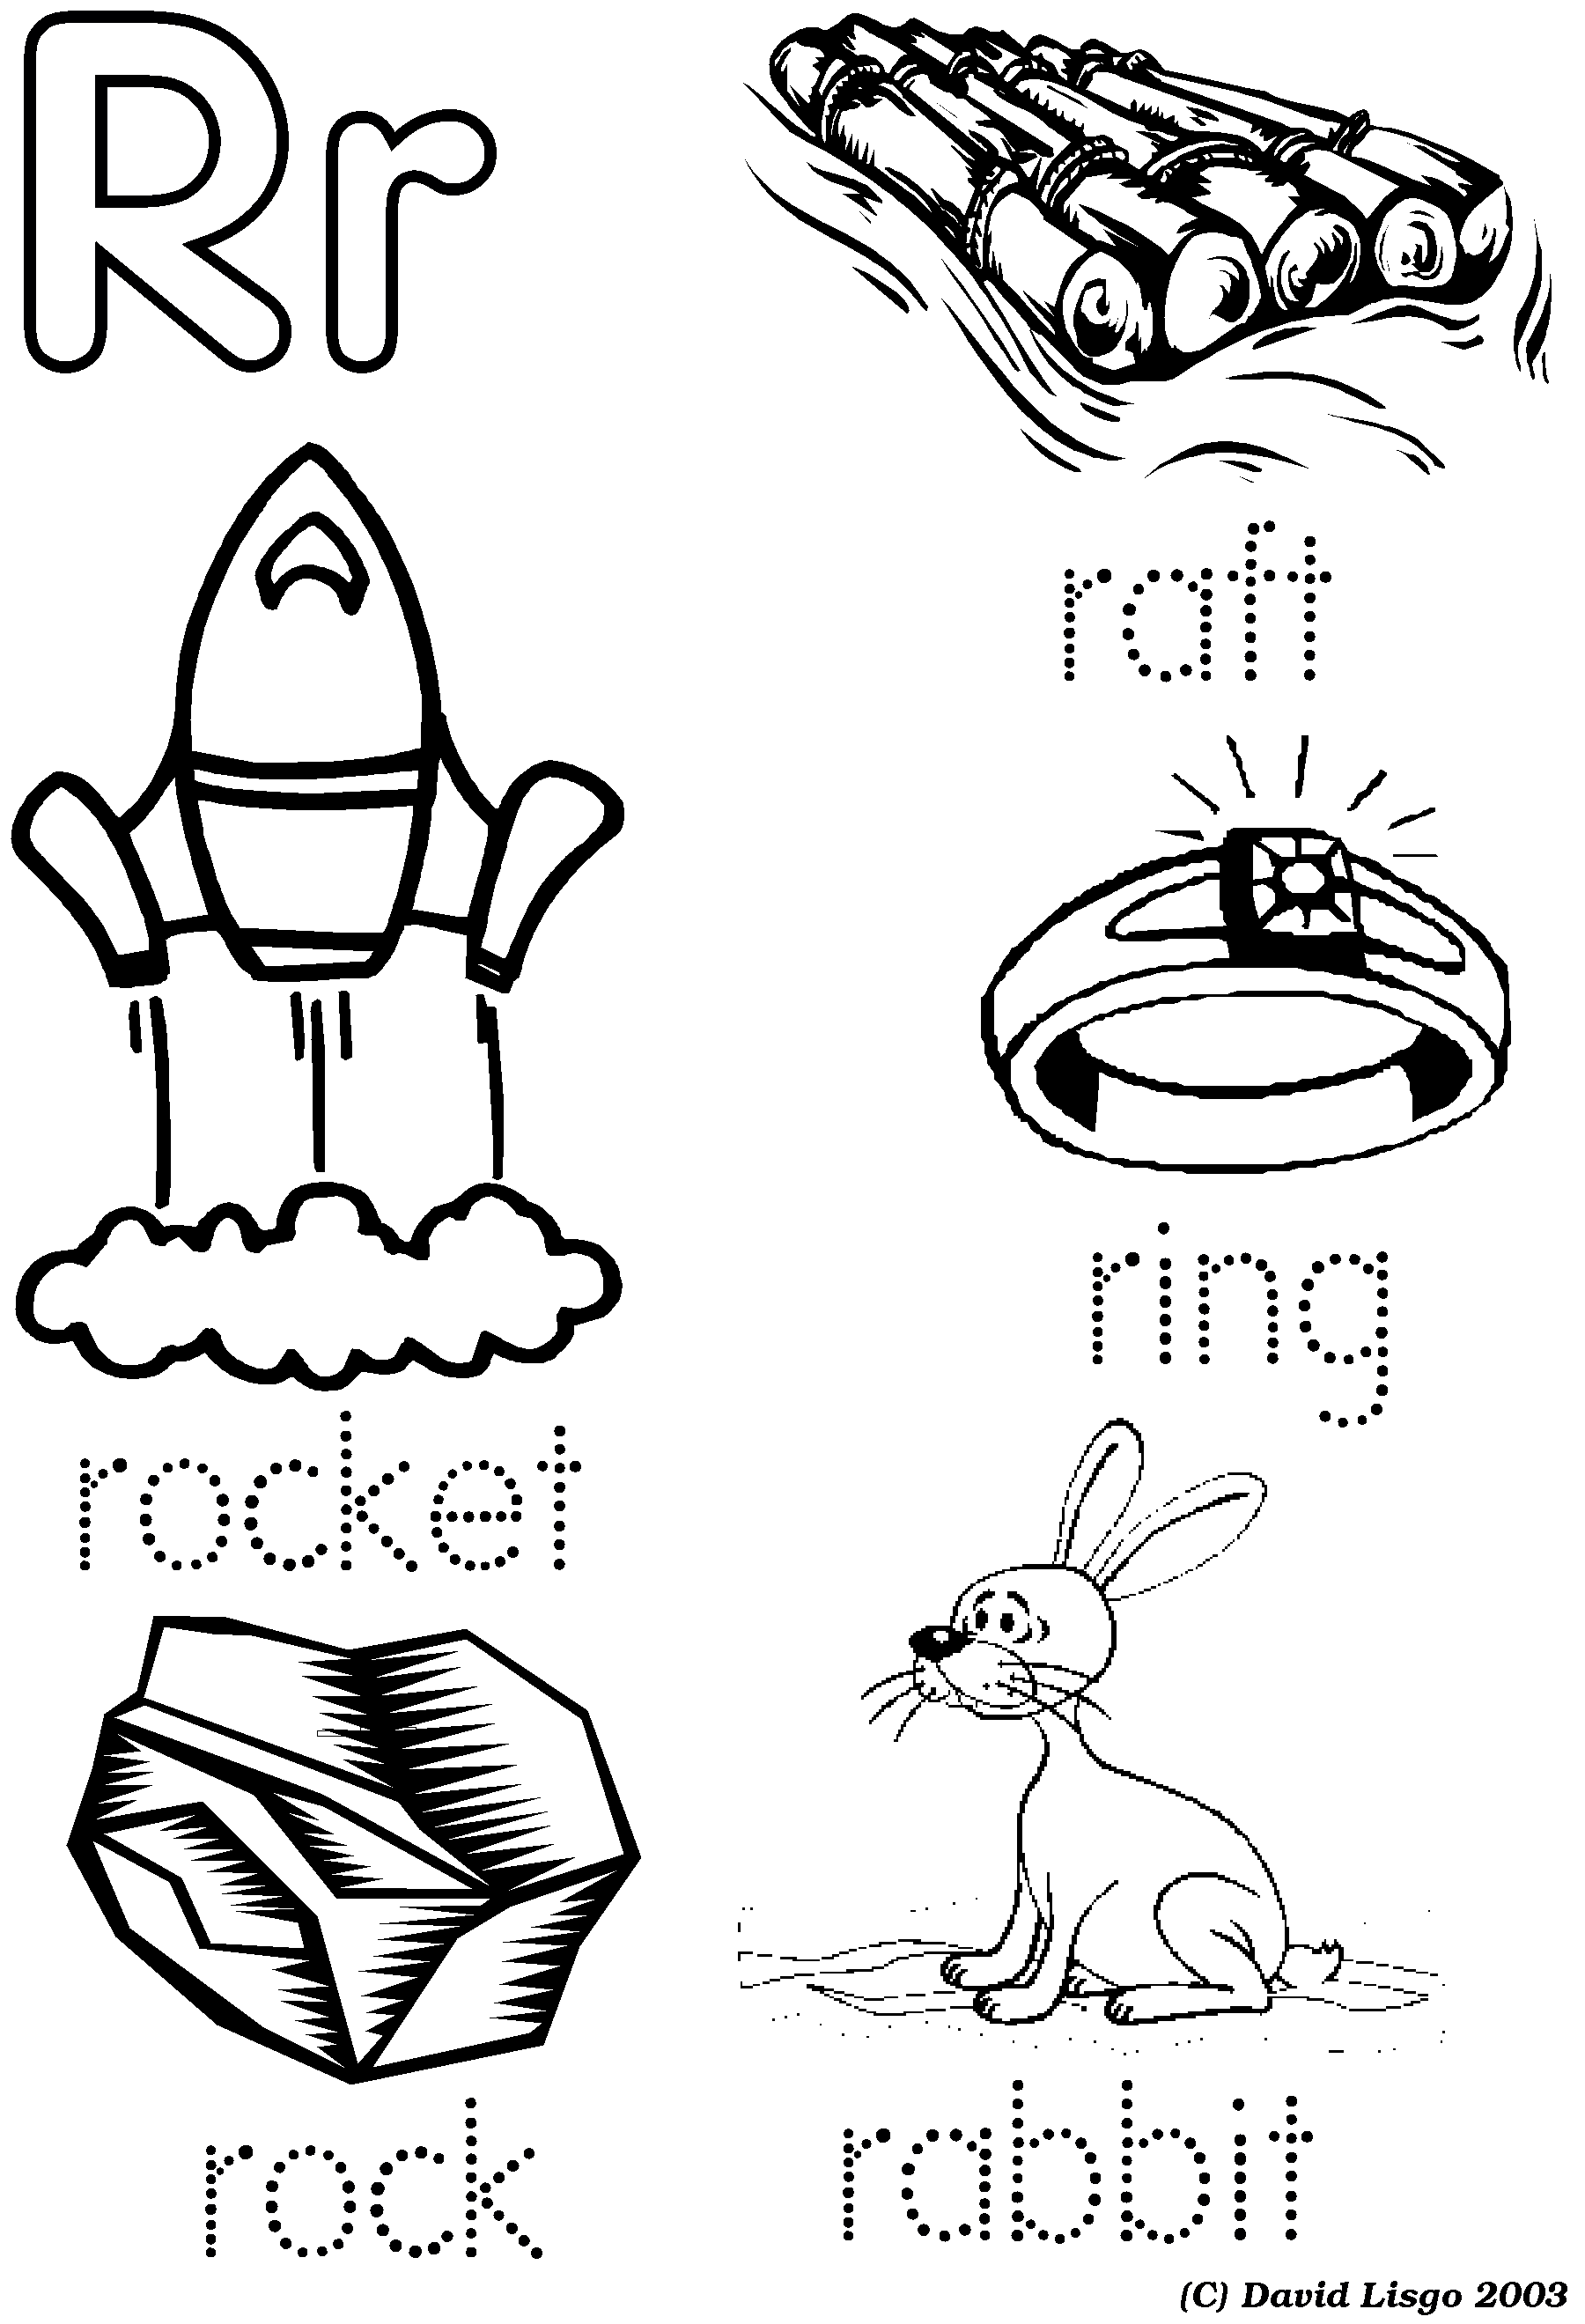 coloring pictures for grade r letter r beginning sound color pictures worksheet letter r pictures grade for coloring